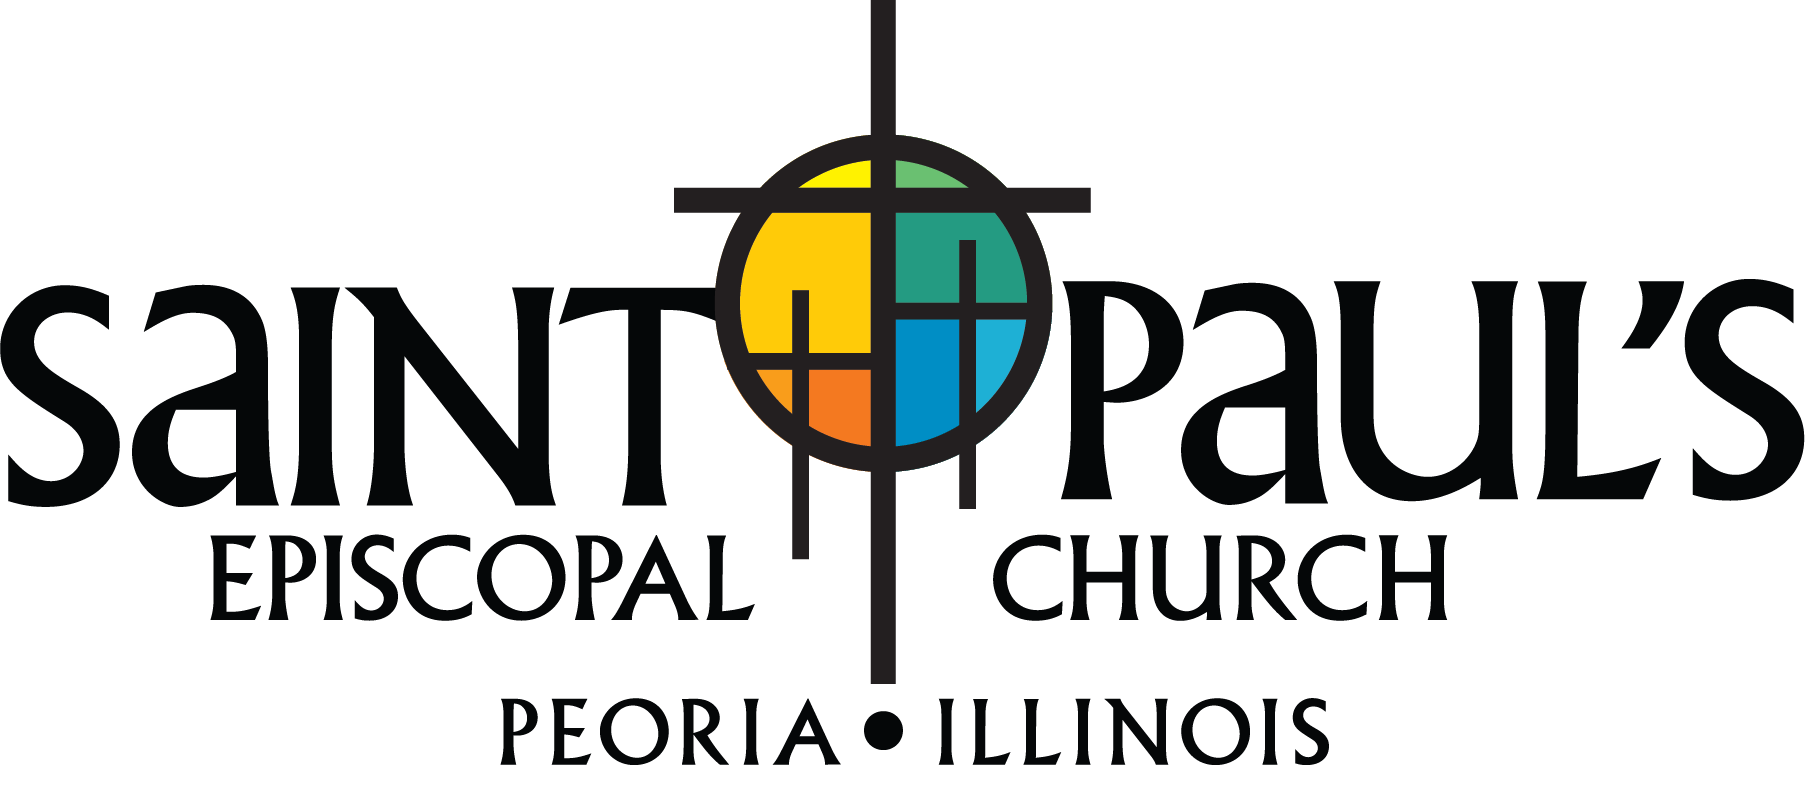 St. Paul's Episcopal Church - Peoria, Illinois